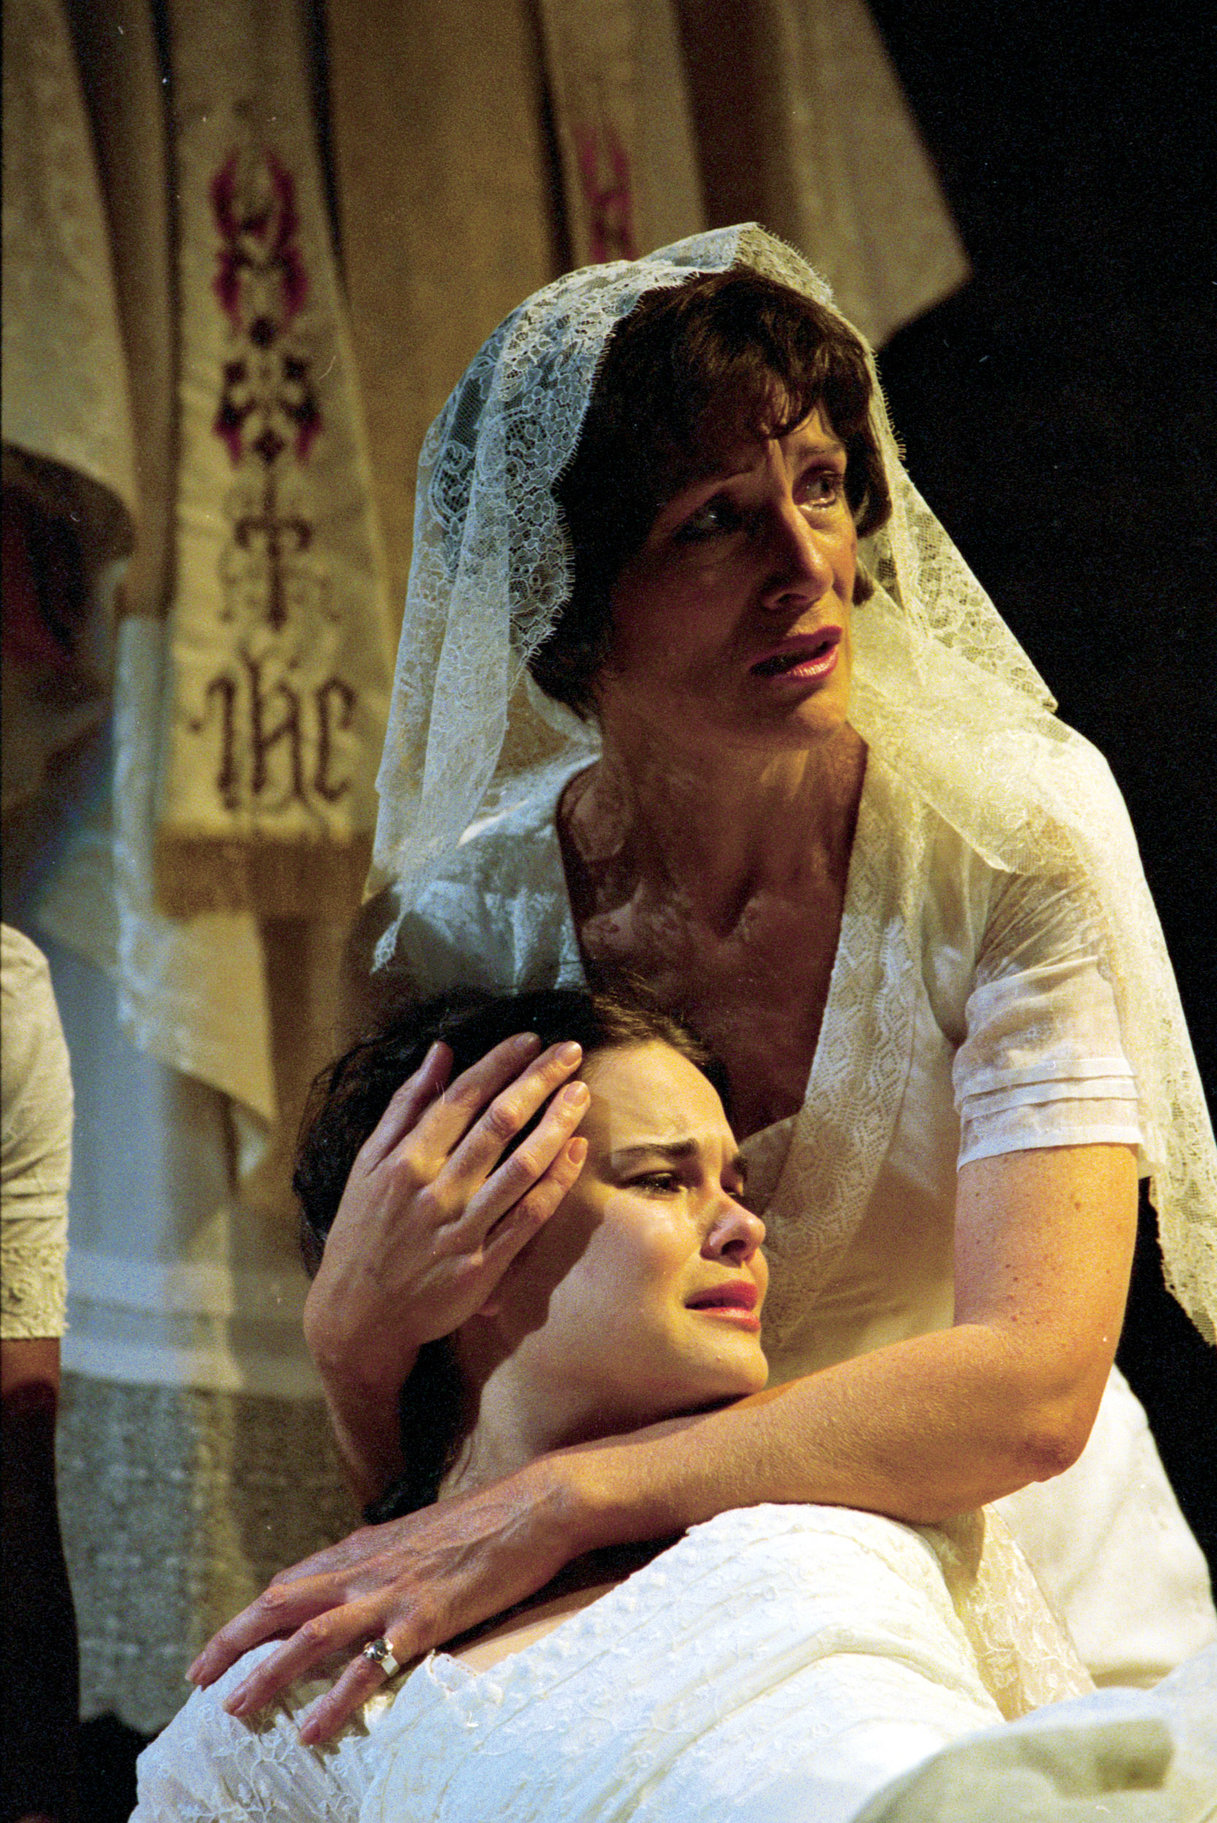 A woman in a white dress and veil holds a crying woman.